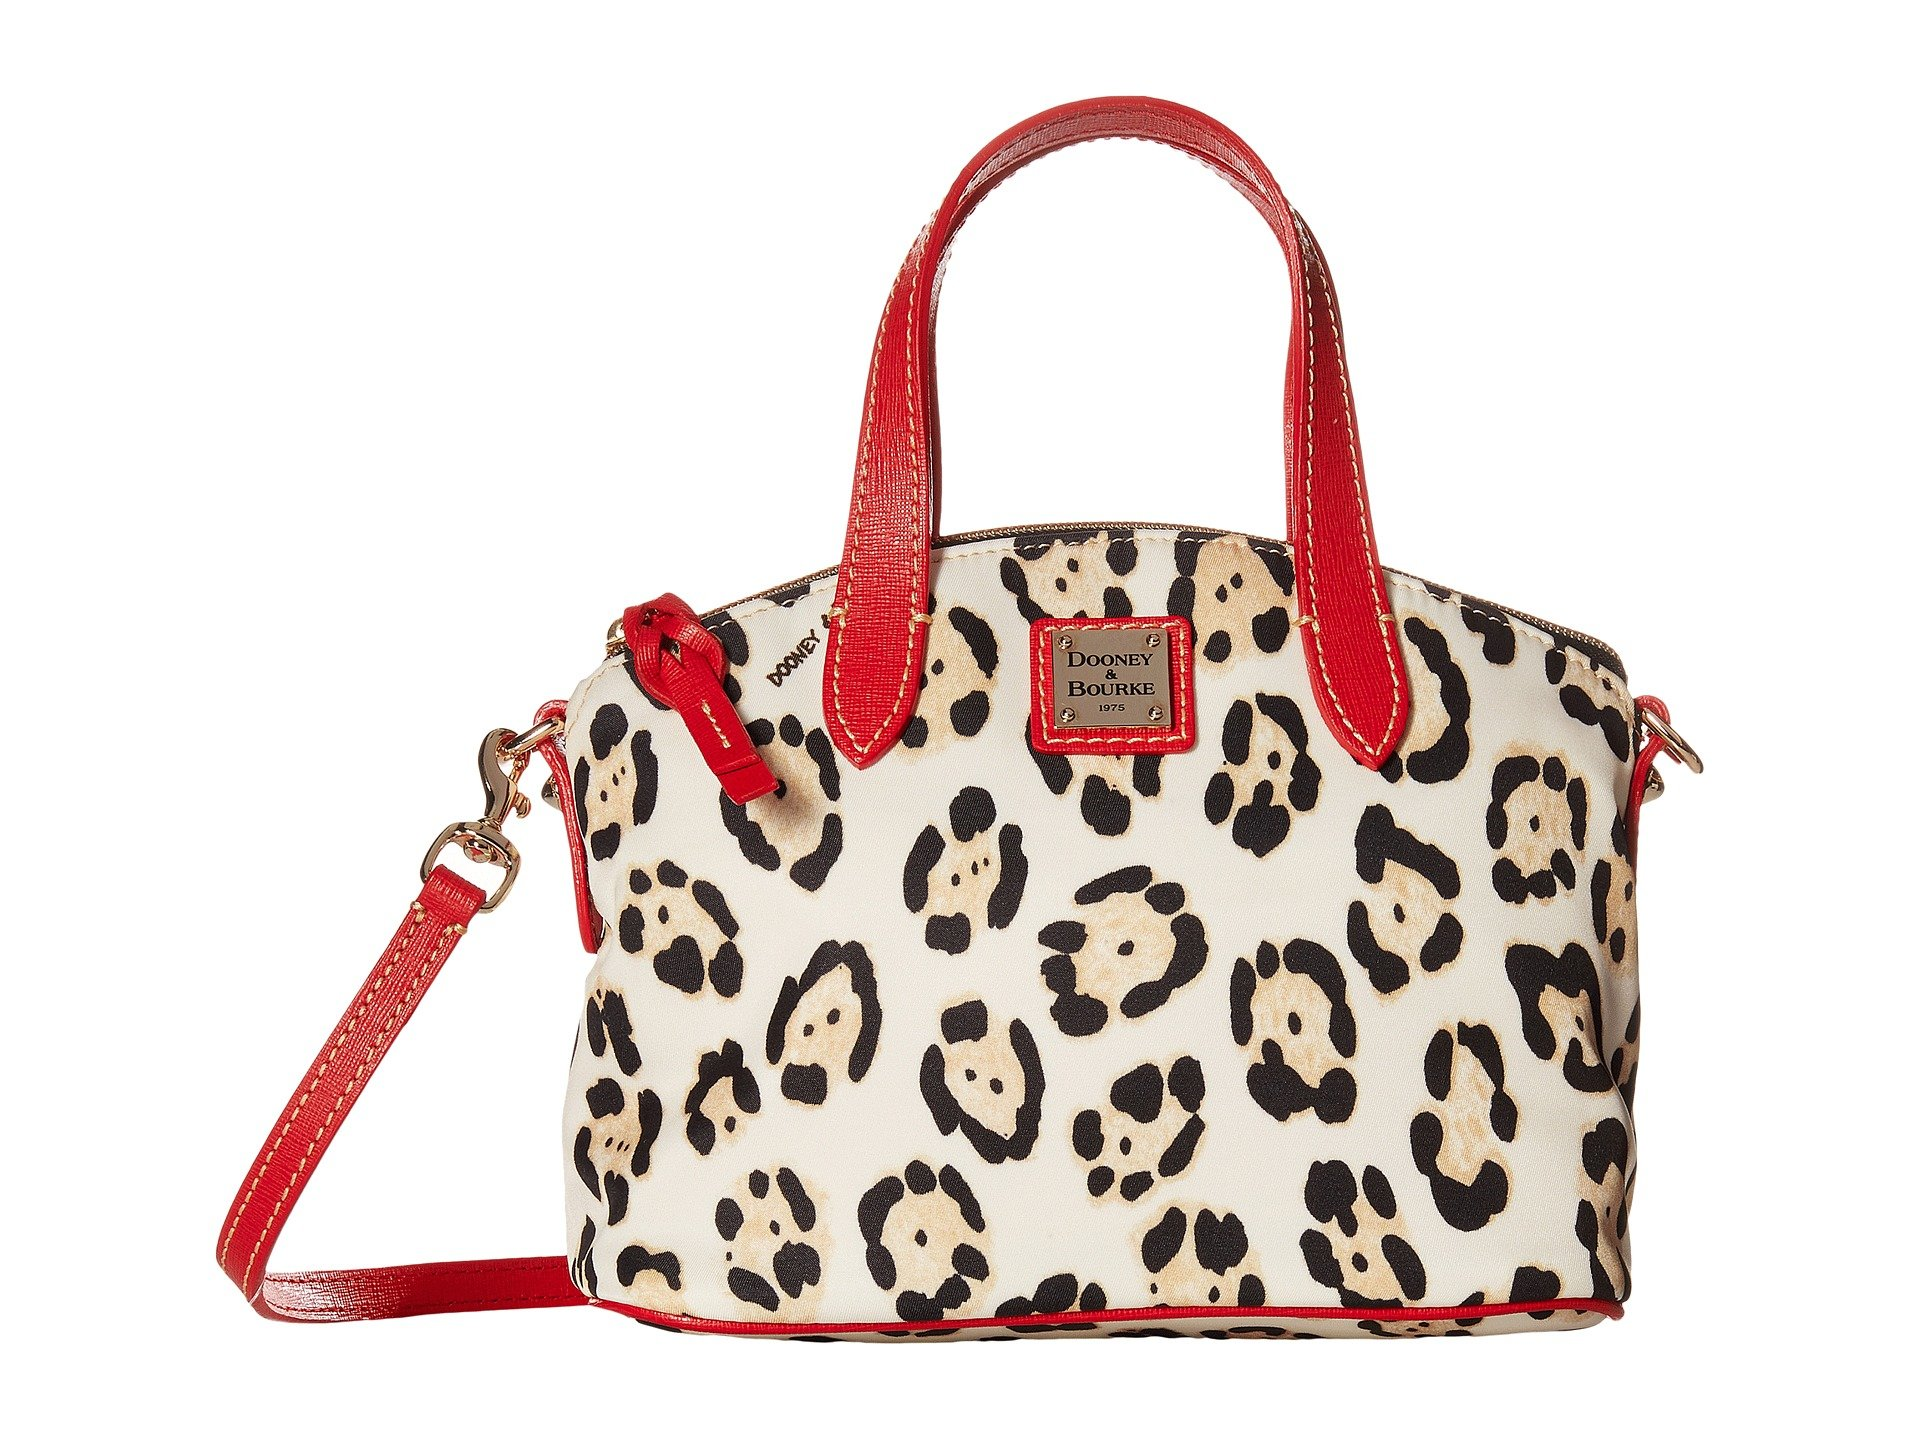 dd0a14f03a73 Dooney & Bourke Ruby Bag Nylon Animal - Lyst